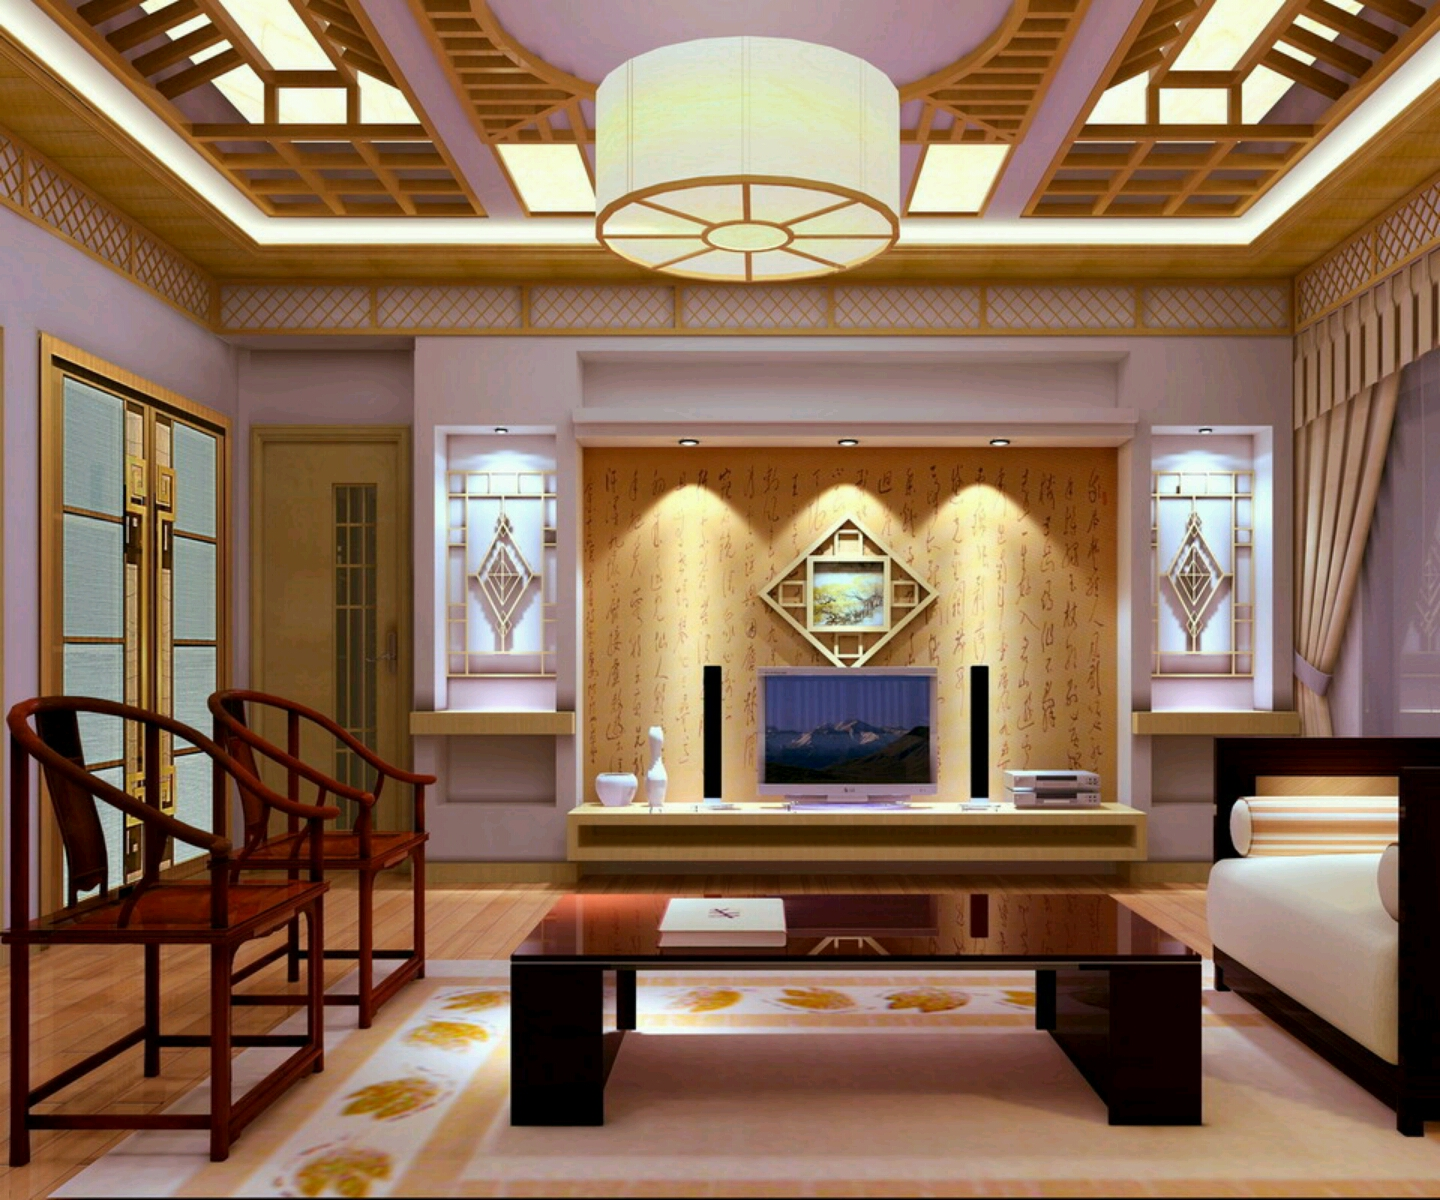 New home designs latest homes interior designs studyrooms for New home interior design